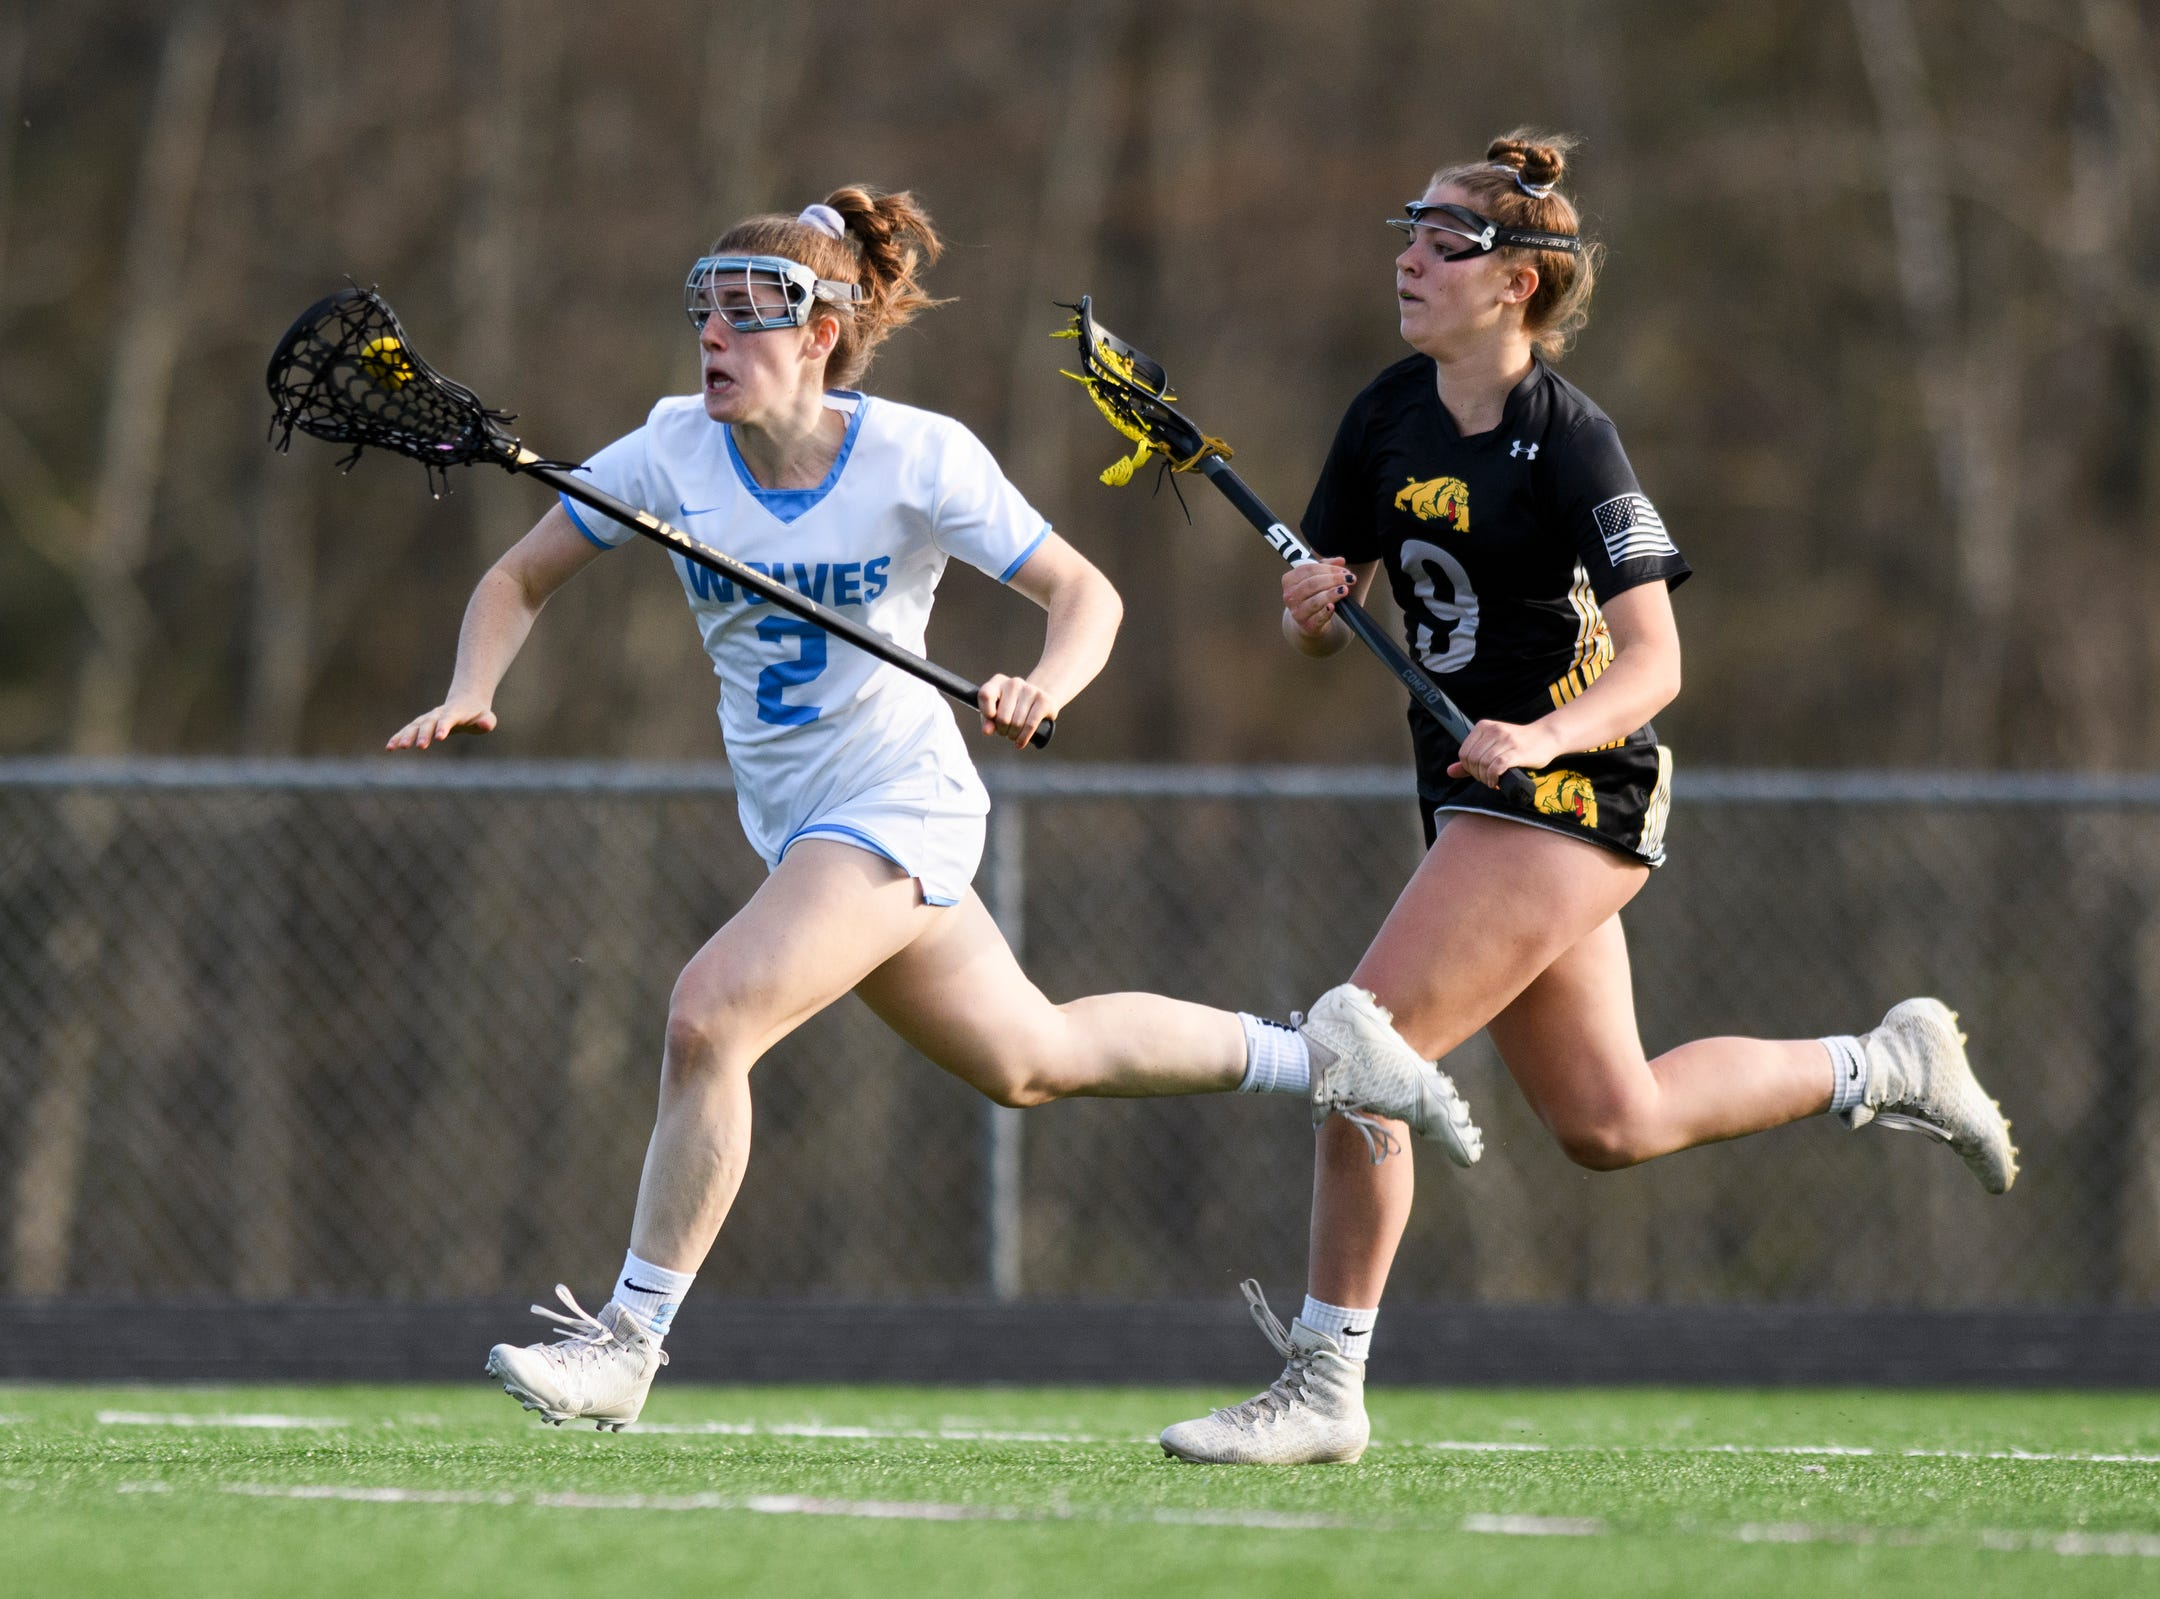 South Burlington's Kate Hall (2) runs down the field past Burr and Burton's Julia Fillion (9) during the high school girls lacrosse game between Burr and Burton Bulldogs and the South Burlington Wolves at Munson Field on Monday afternoon May 6, 2019 in South Burlington, Vermont..